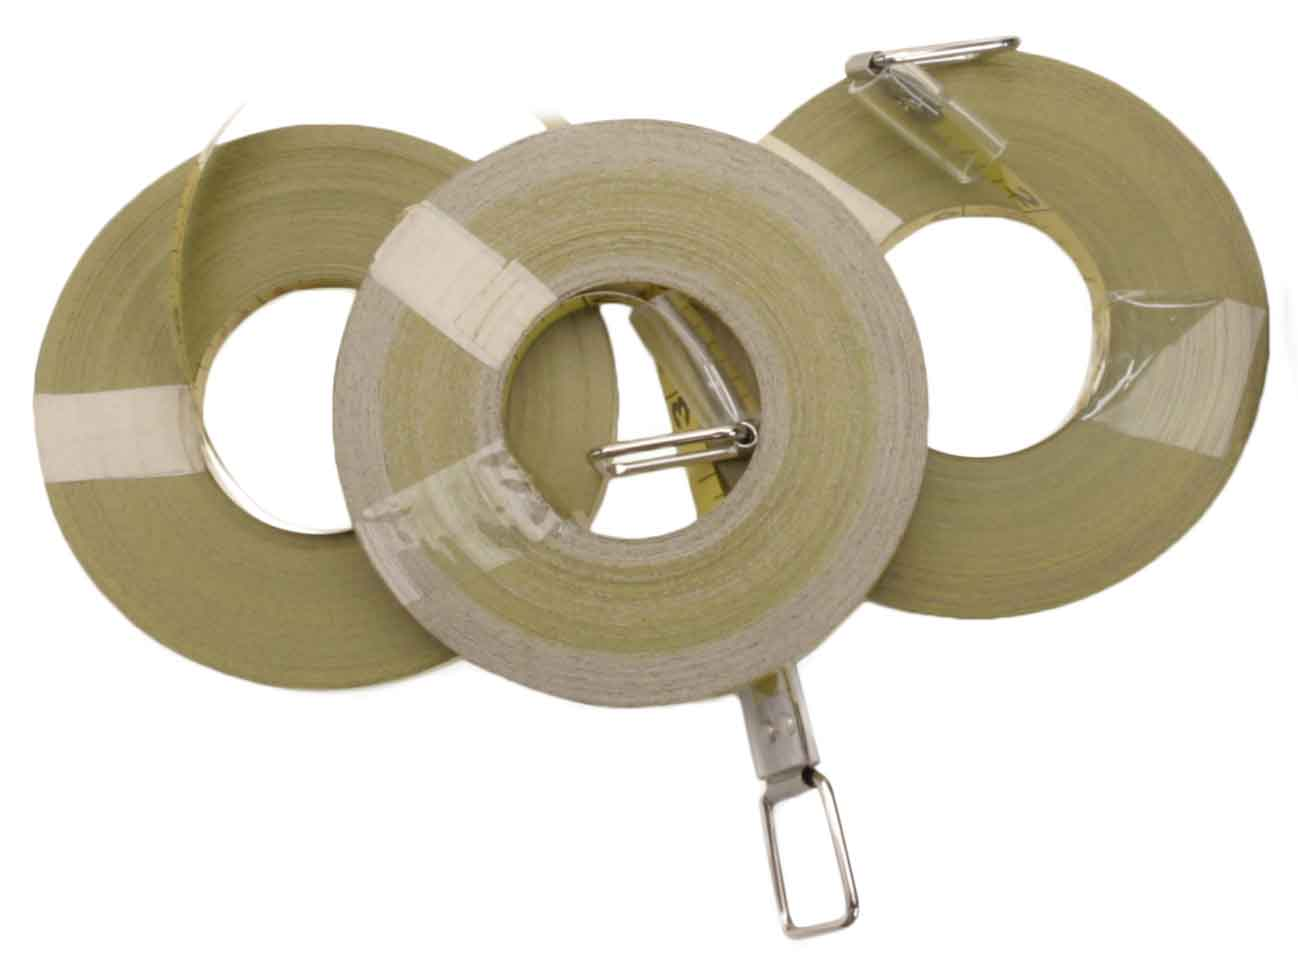 TAP 905DC - Spencer 905DC - 100ft Combination Tape Refill